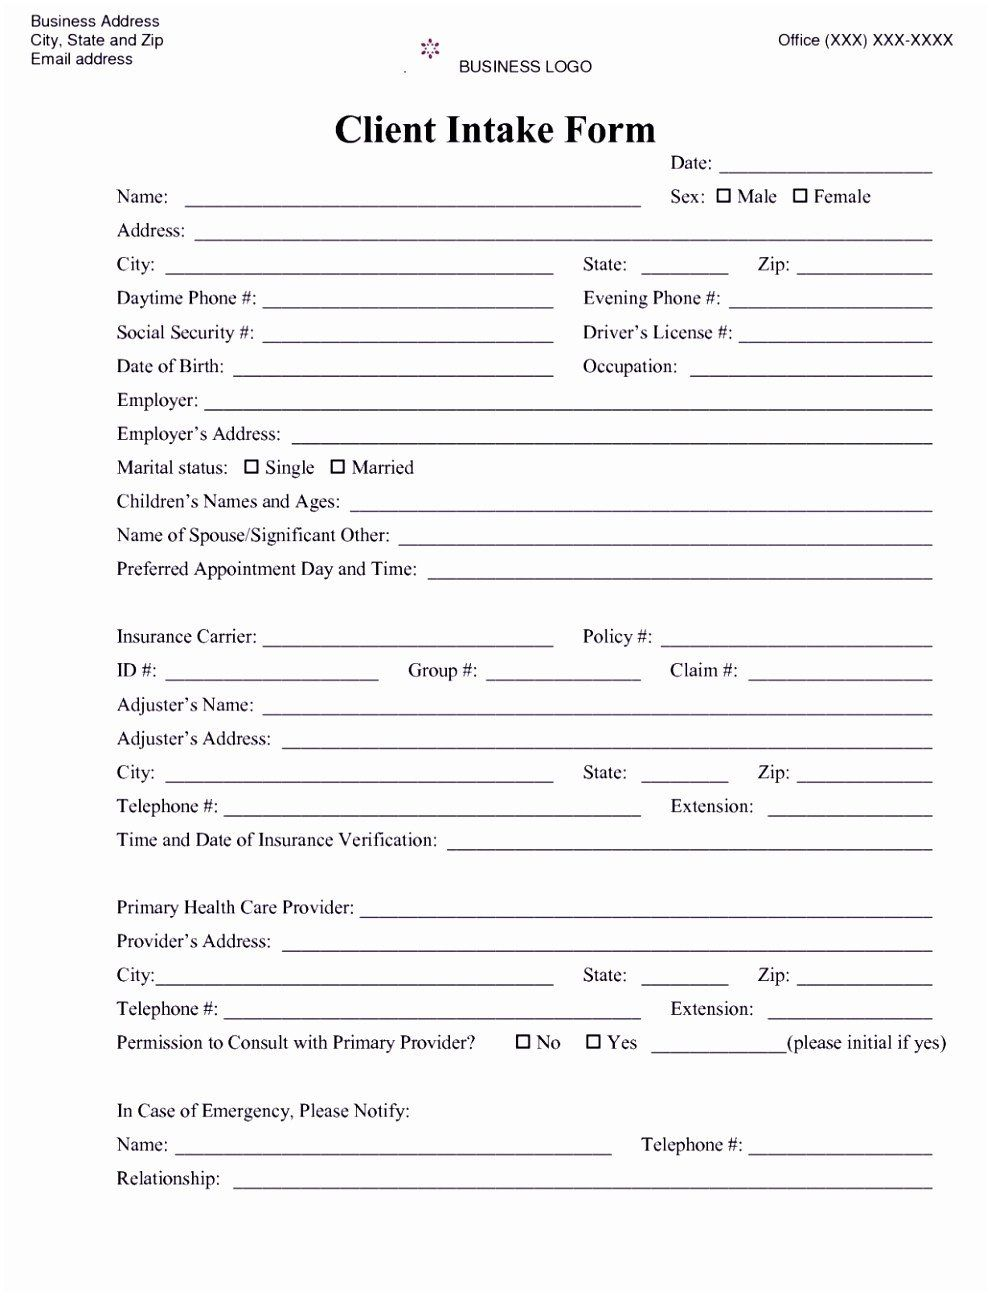 Free Counseling Forms Templates Lovely 6 Counselling Referral Form Template Uyefi Treatment Plan Template Certificate Of Completion Template Counseling Forms